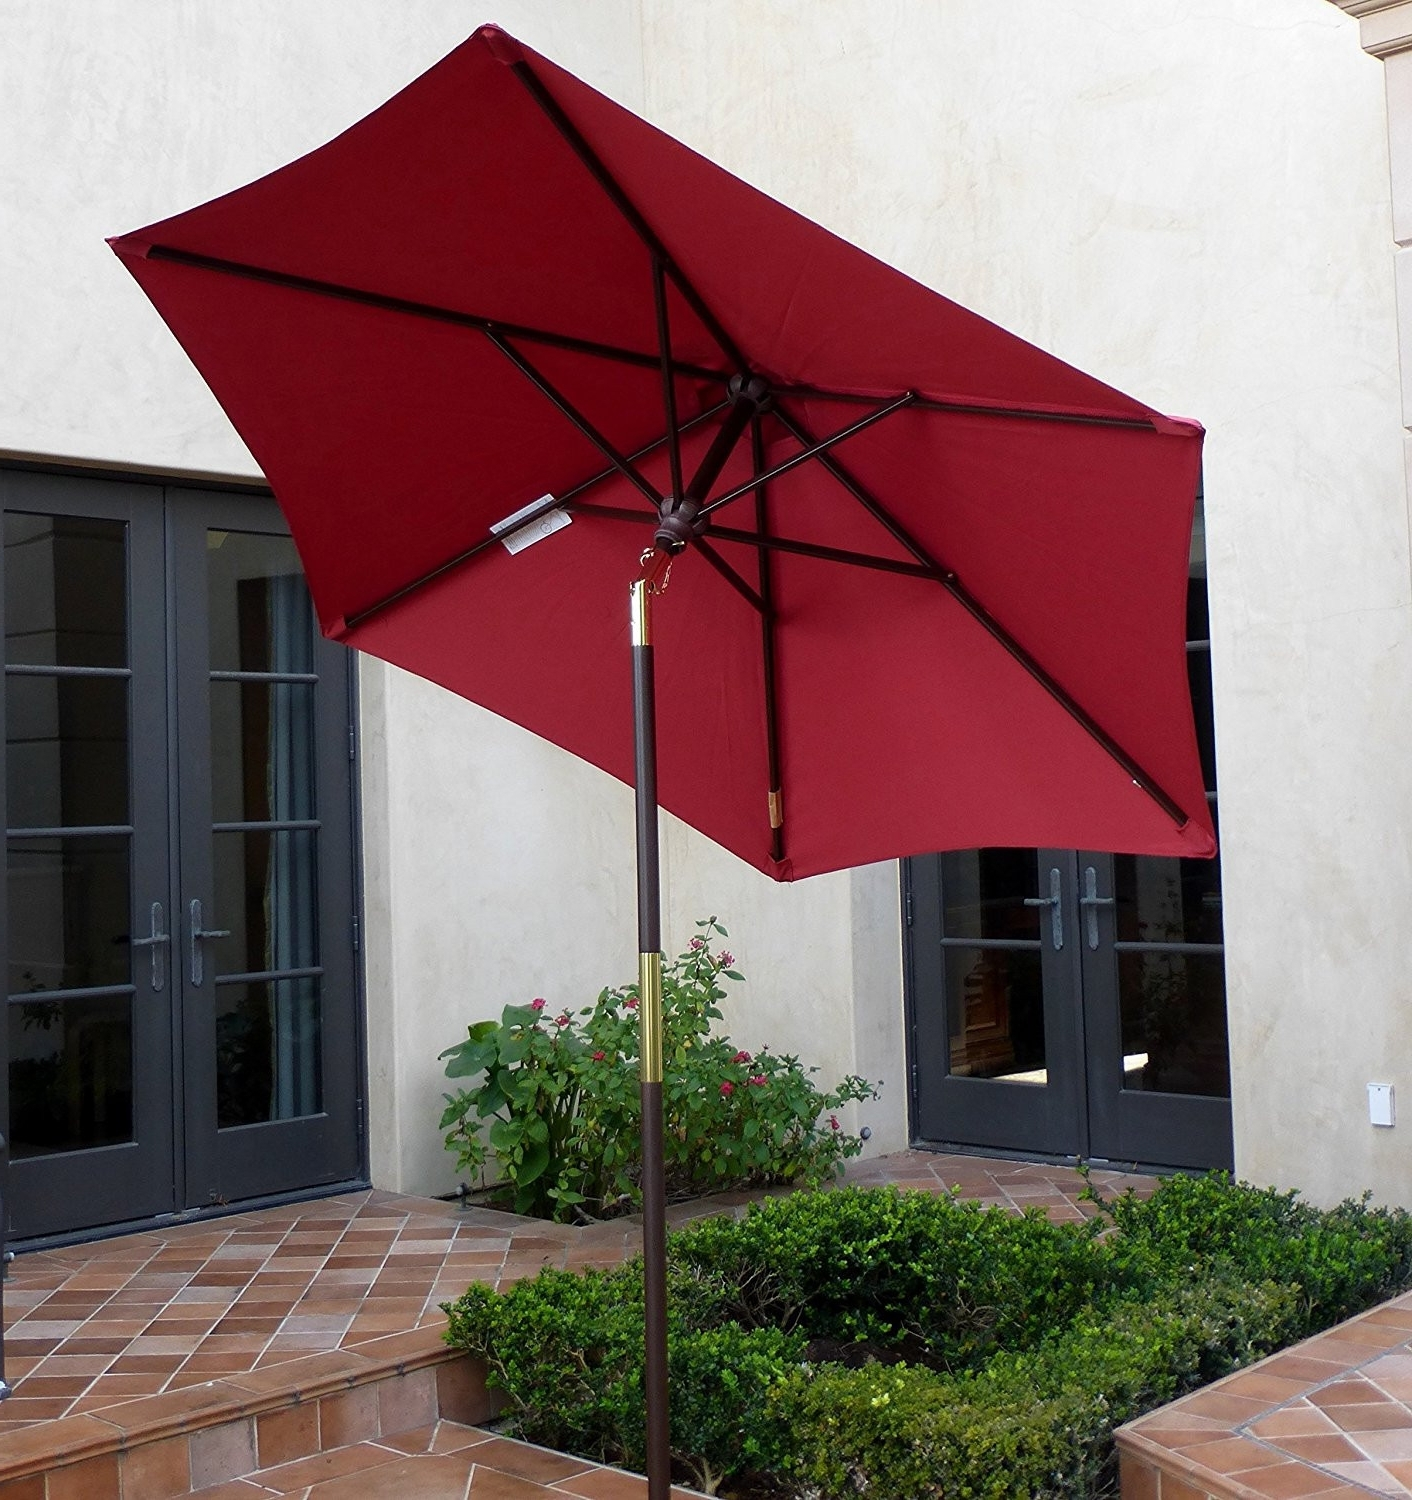 Commercial Outdoor Umbrellas Elegant Best For High Wind Areas This Intended For Well Liked Patio Umbrellas For High Wind Areas (Gallery 16 of 20)